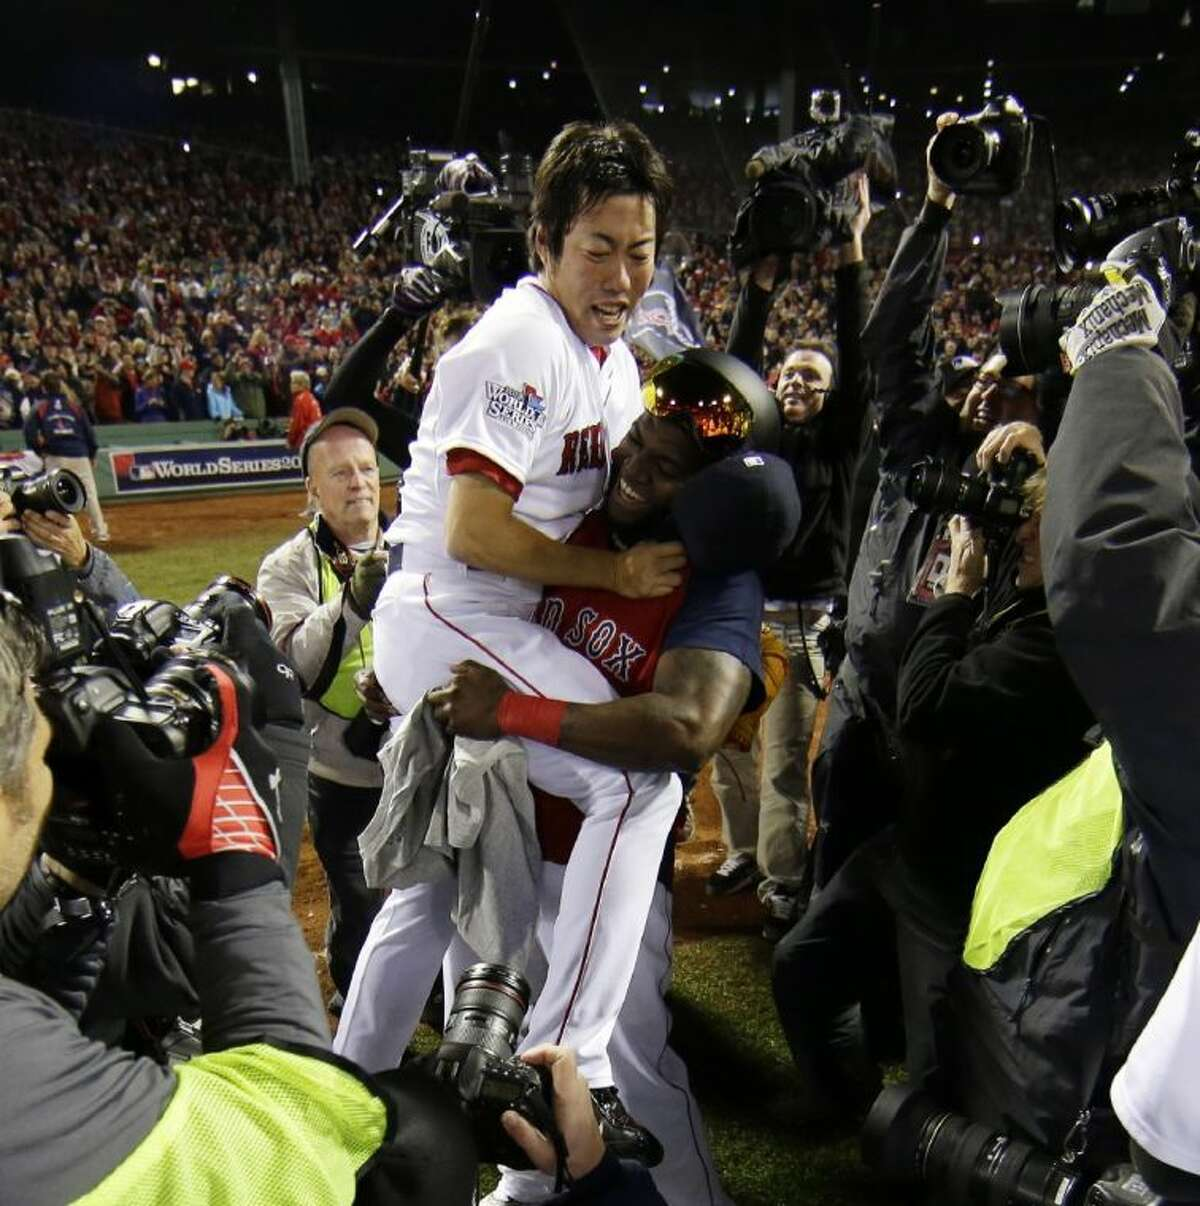 David Ortiz of the Red Sox hoists teammate Koji Uehara after they closed the World Series with a 6-1 victory over St. Louis.